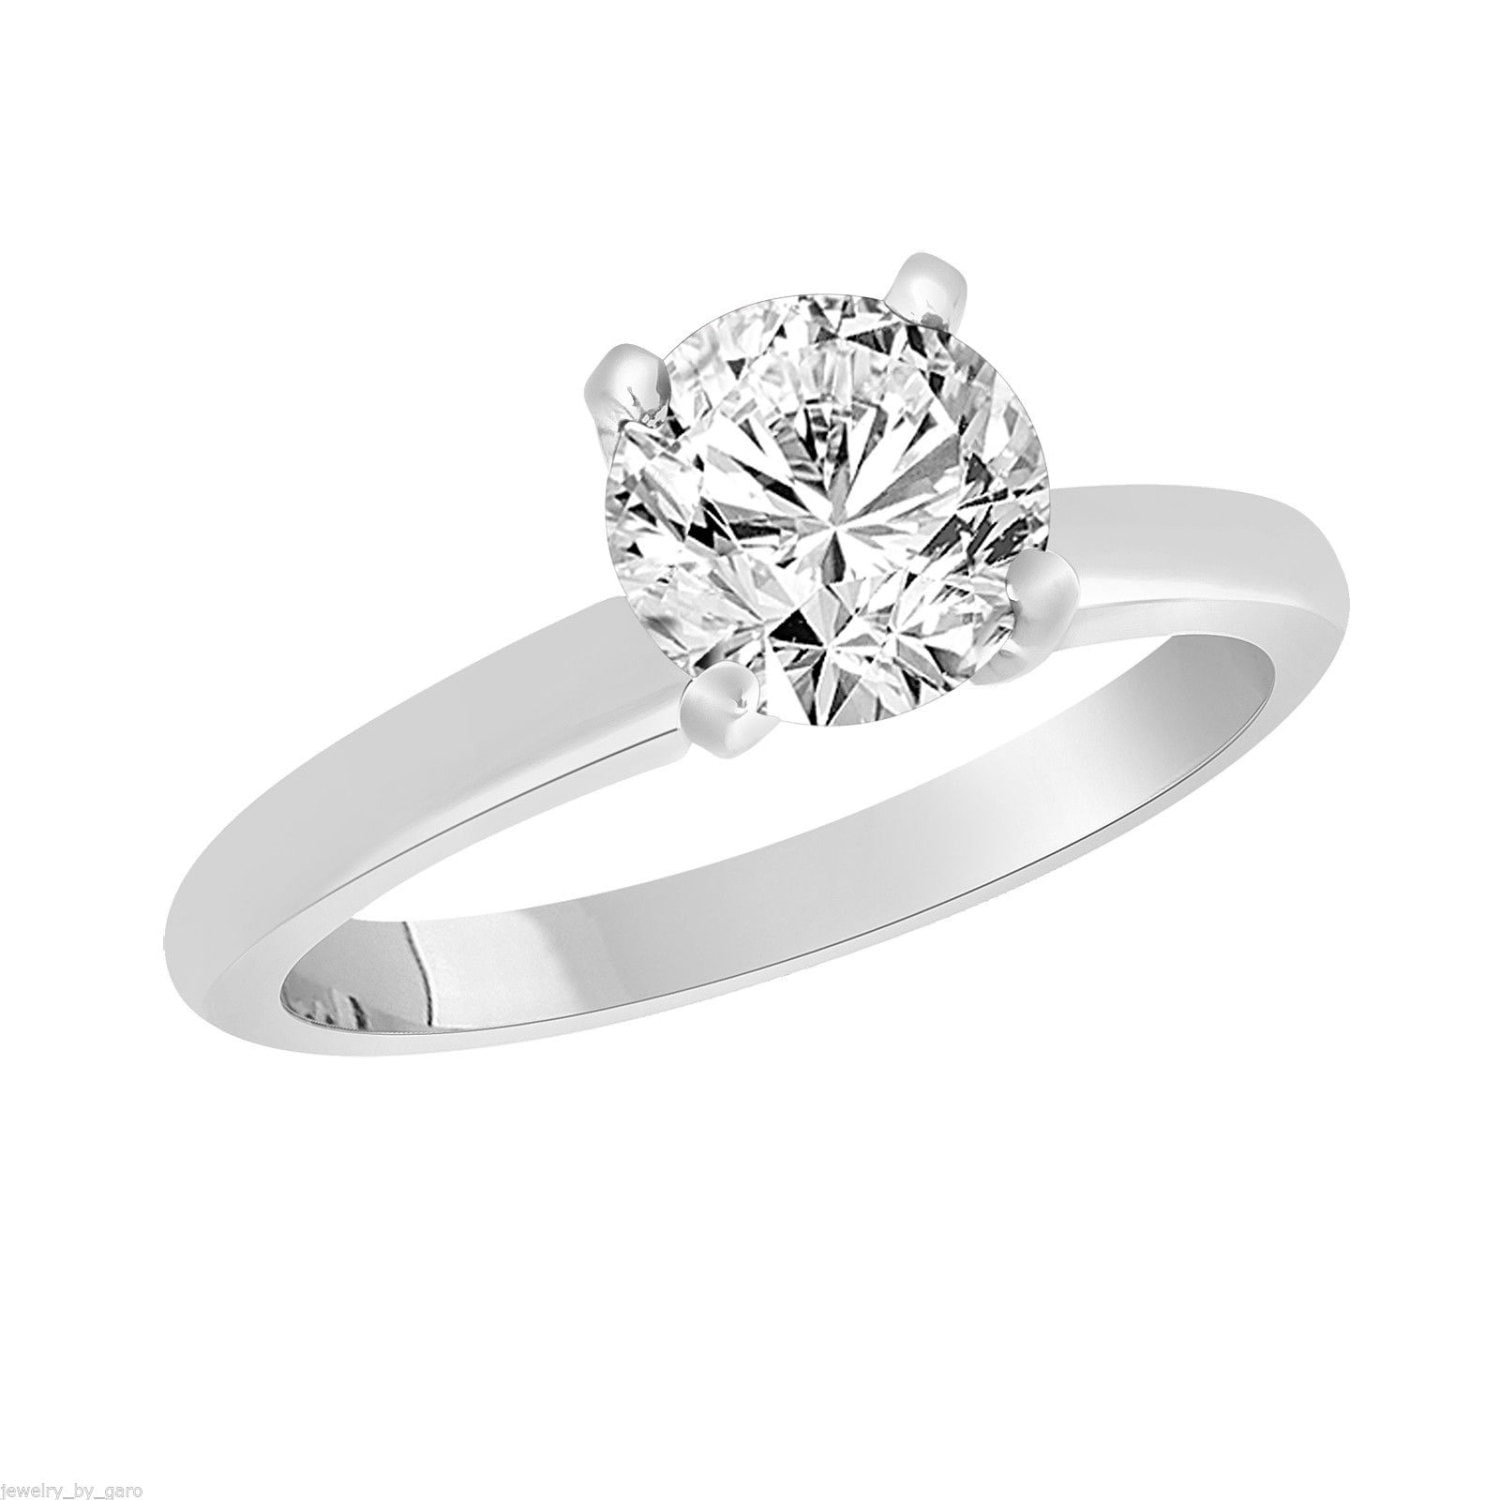 Solitaire Diamond Engagement Ring 1 01 Carat 14K White Gold